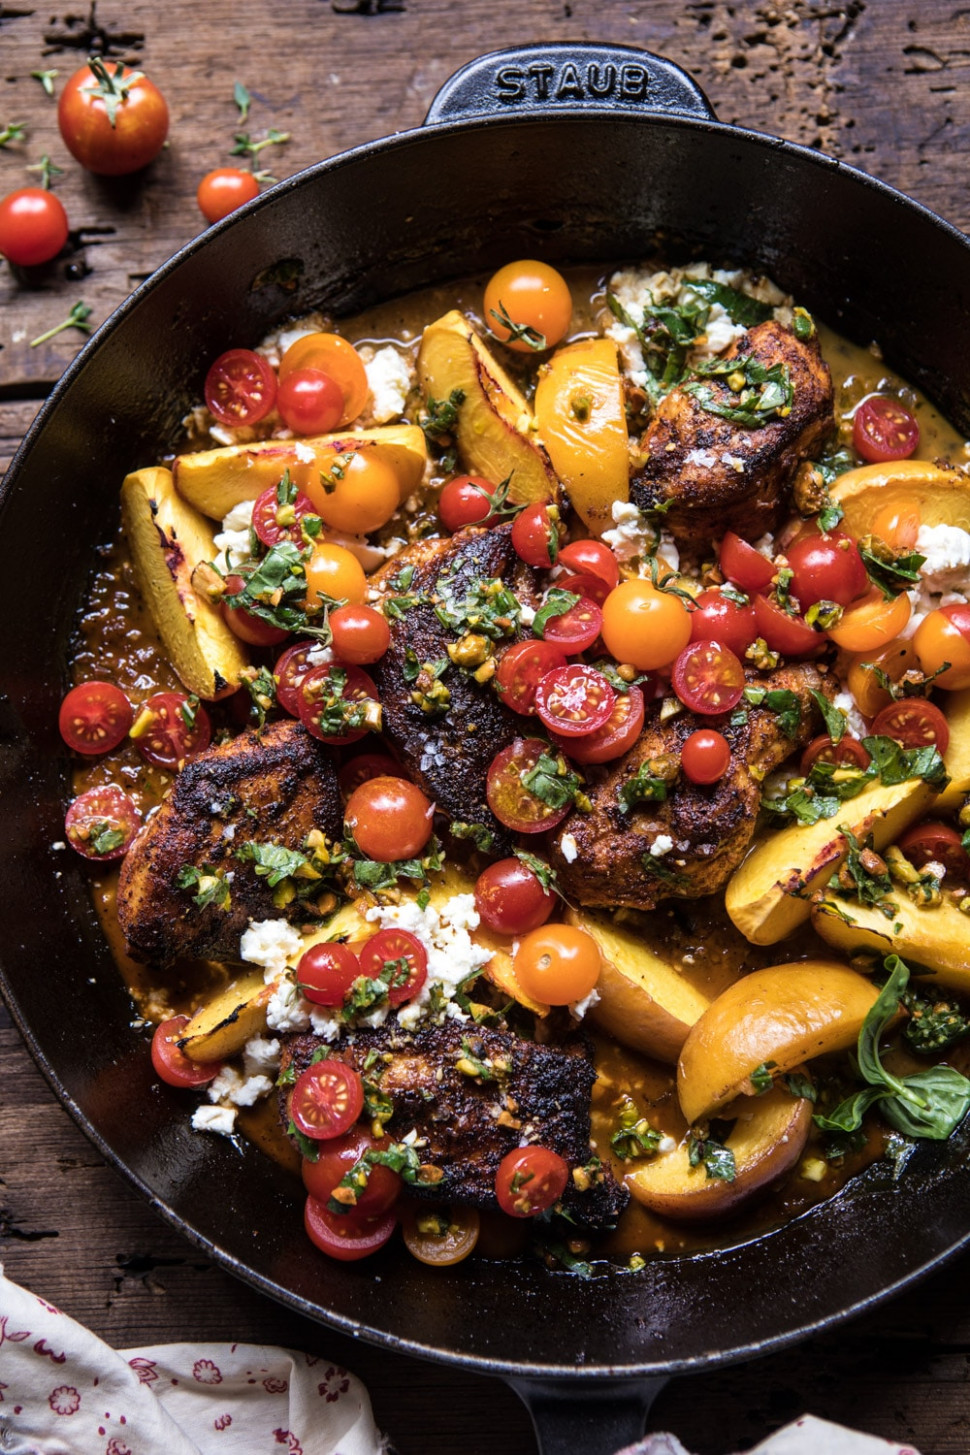 Skillet Moroccan Chicken with Tomatoes, Peaches, and Feta - moroccan food recipes